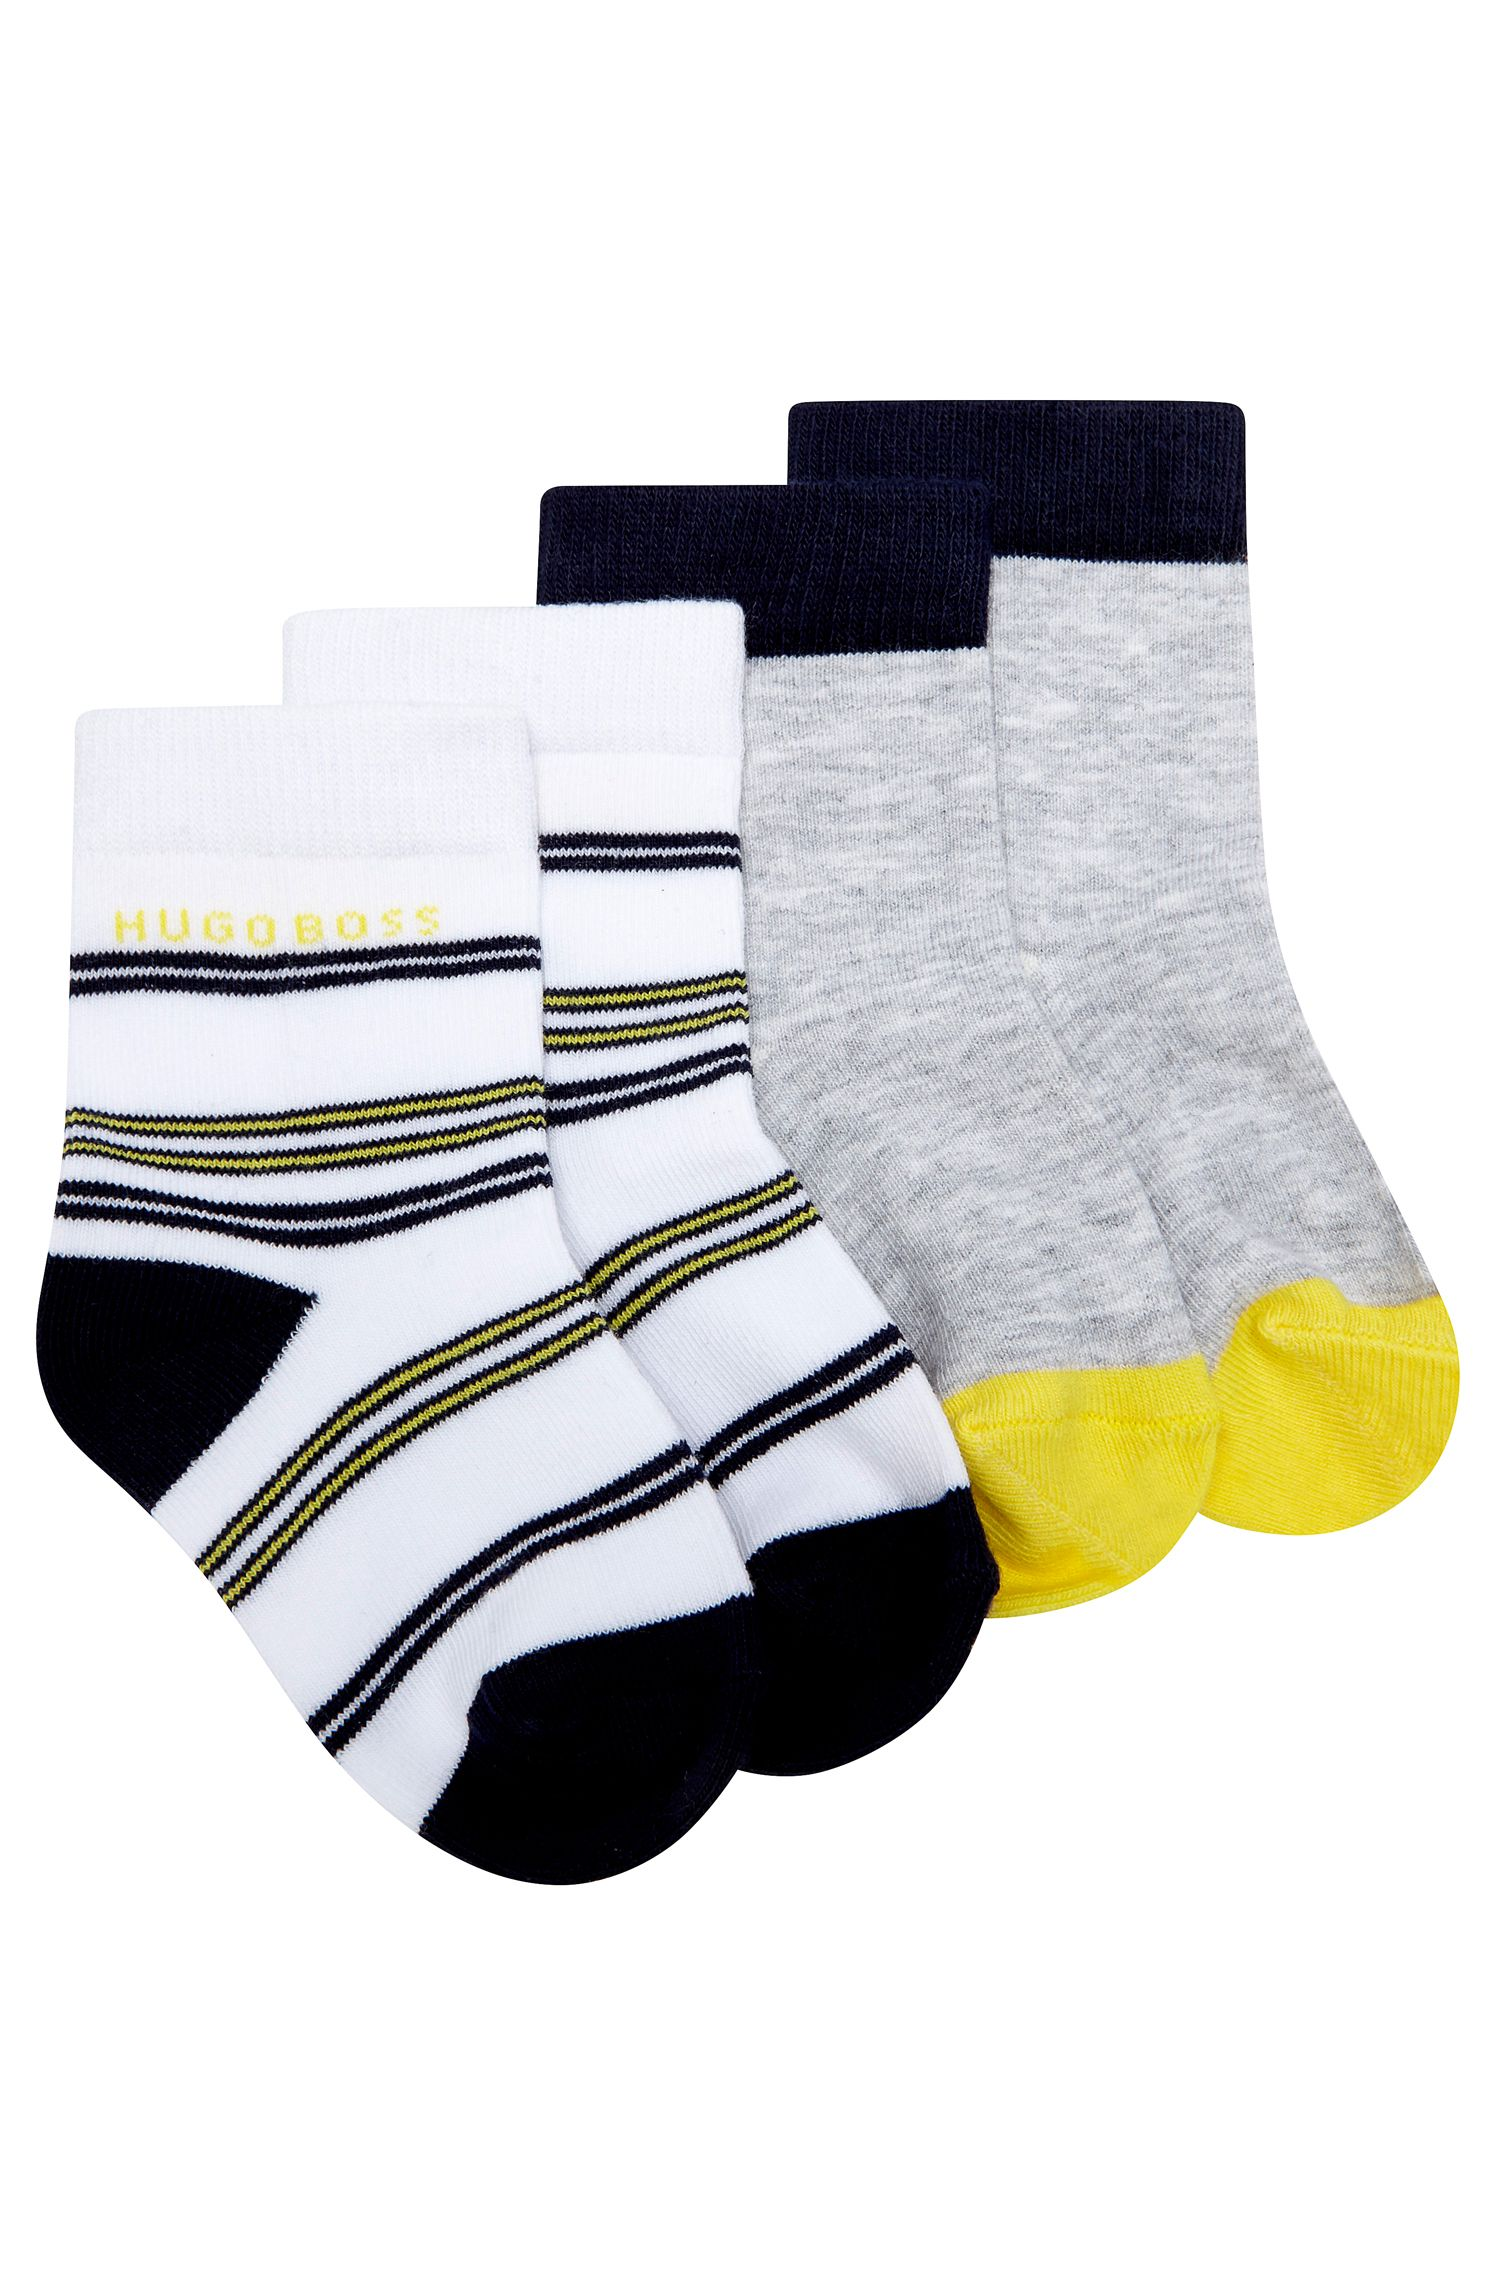 'J00073' | Two Pack Striped and Colorblock Socks